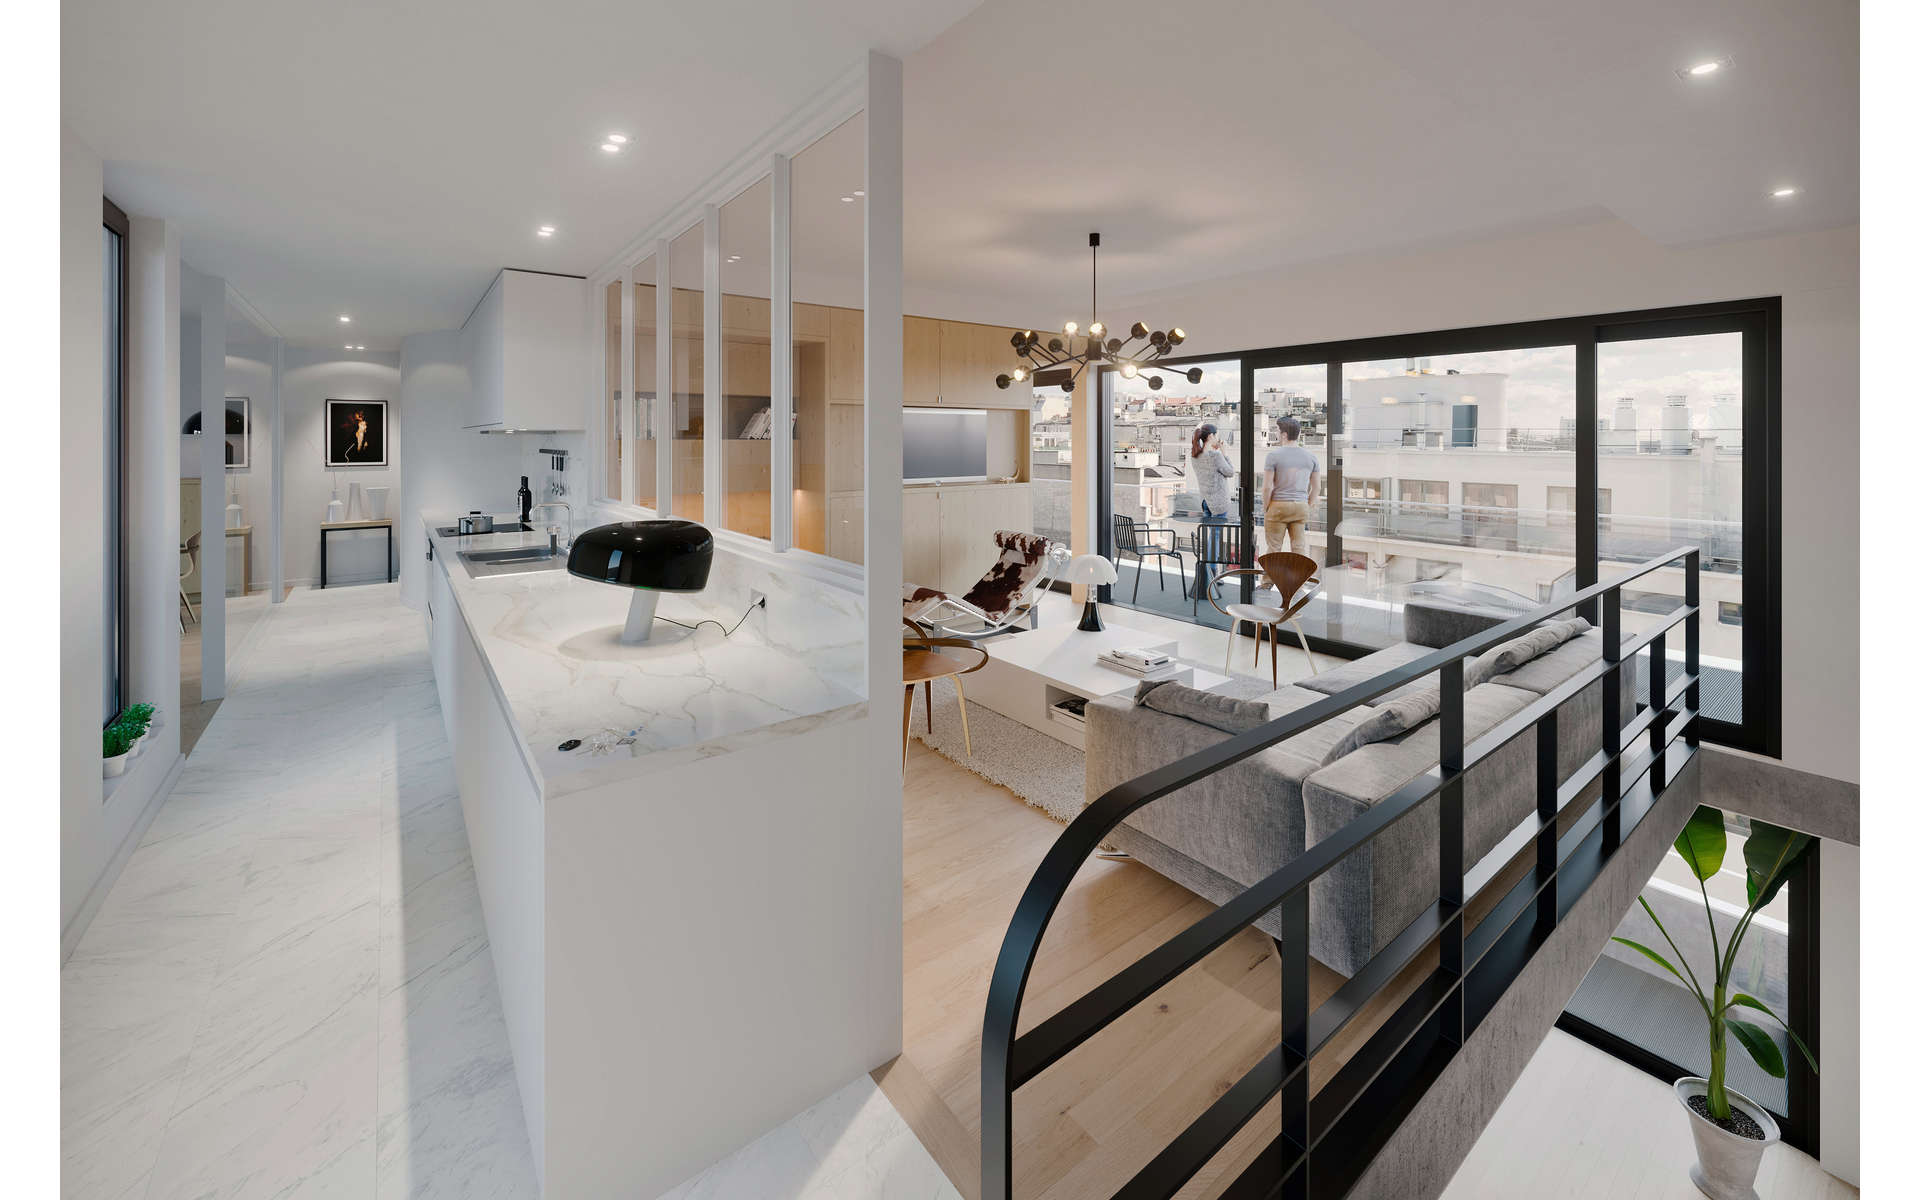 303/Alios/Photos/Projets/Paris Mathurin Moreau/alios_paris_mathurin_logement_app_3.jpg